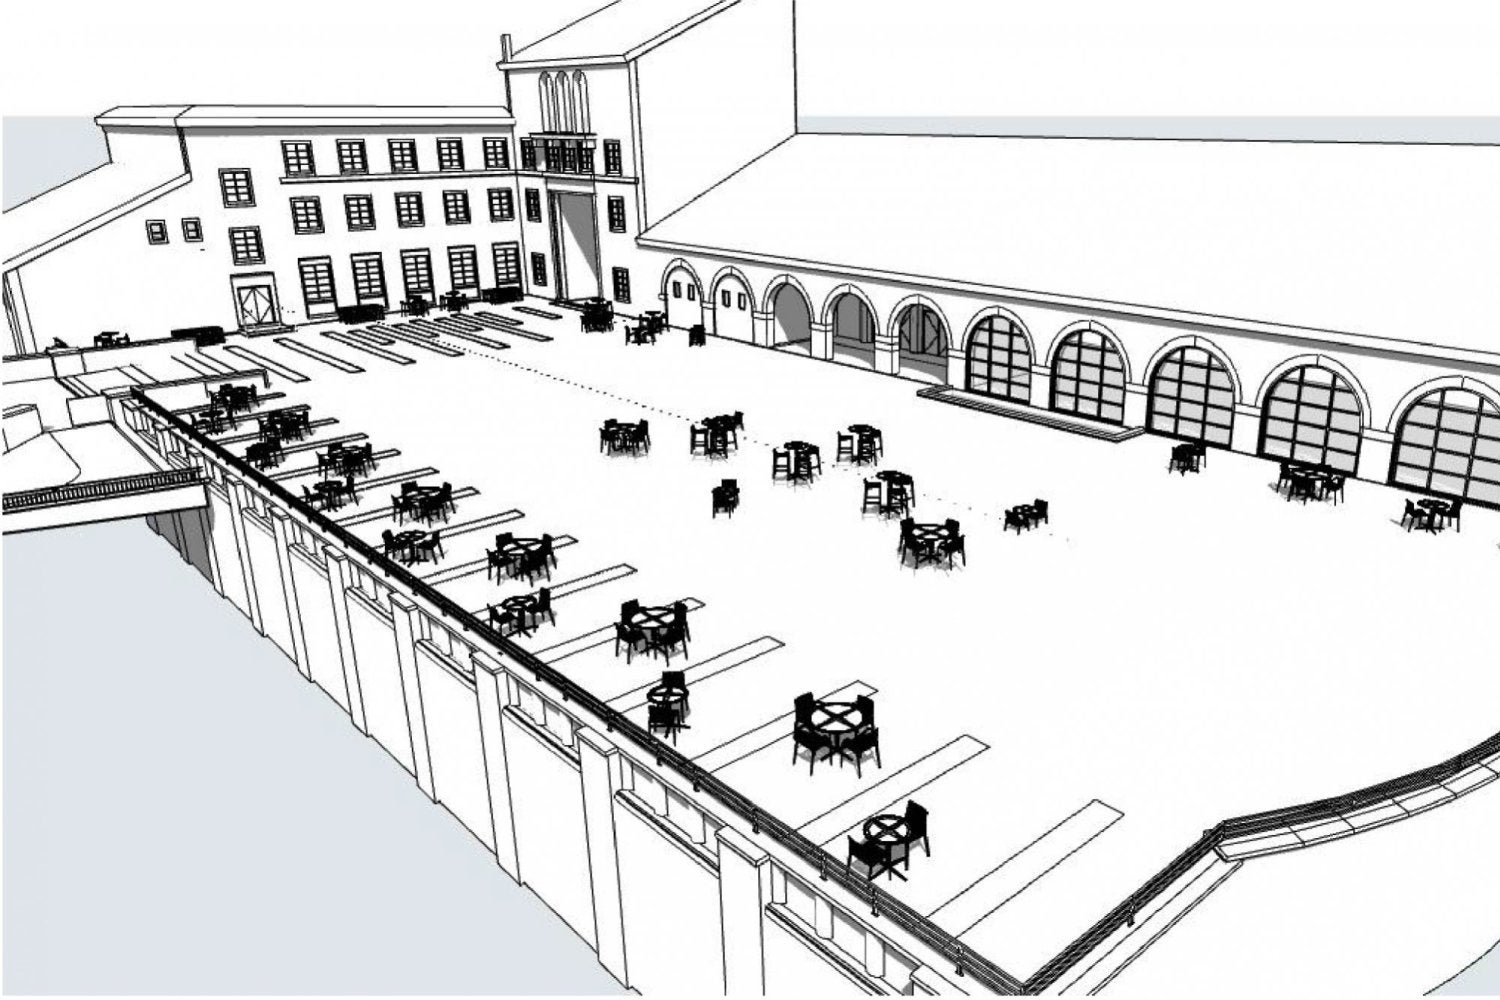 UMC South Terrace renovation rendering - View from southeast